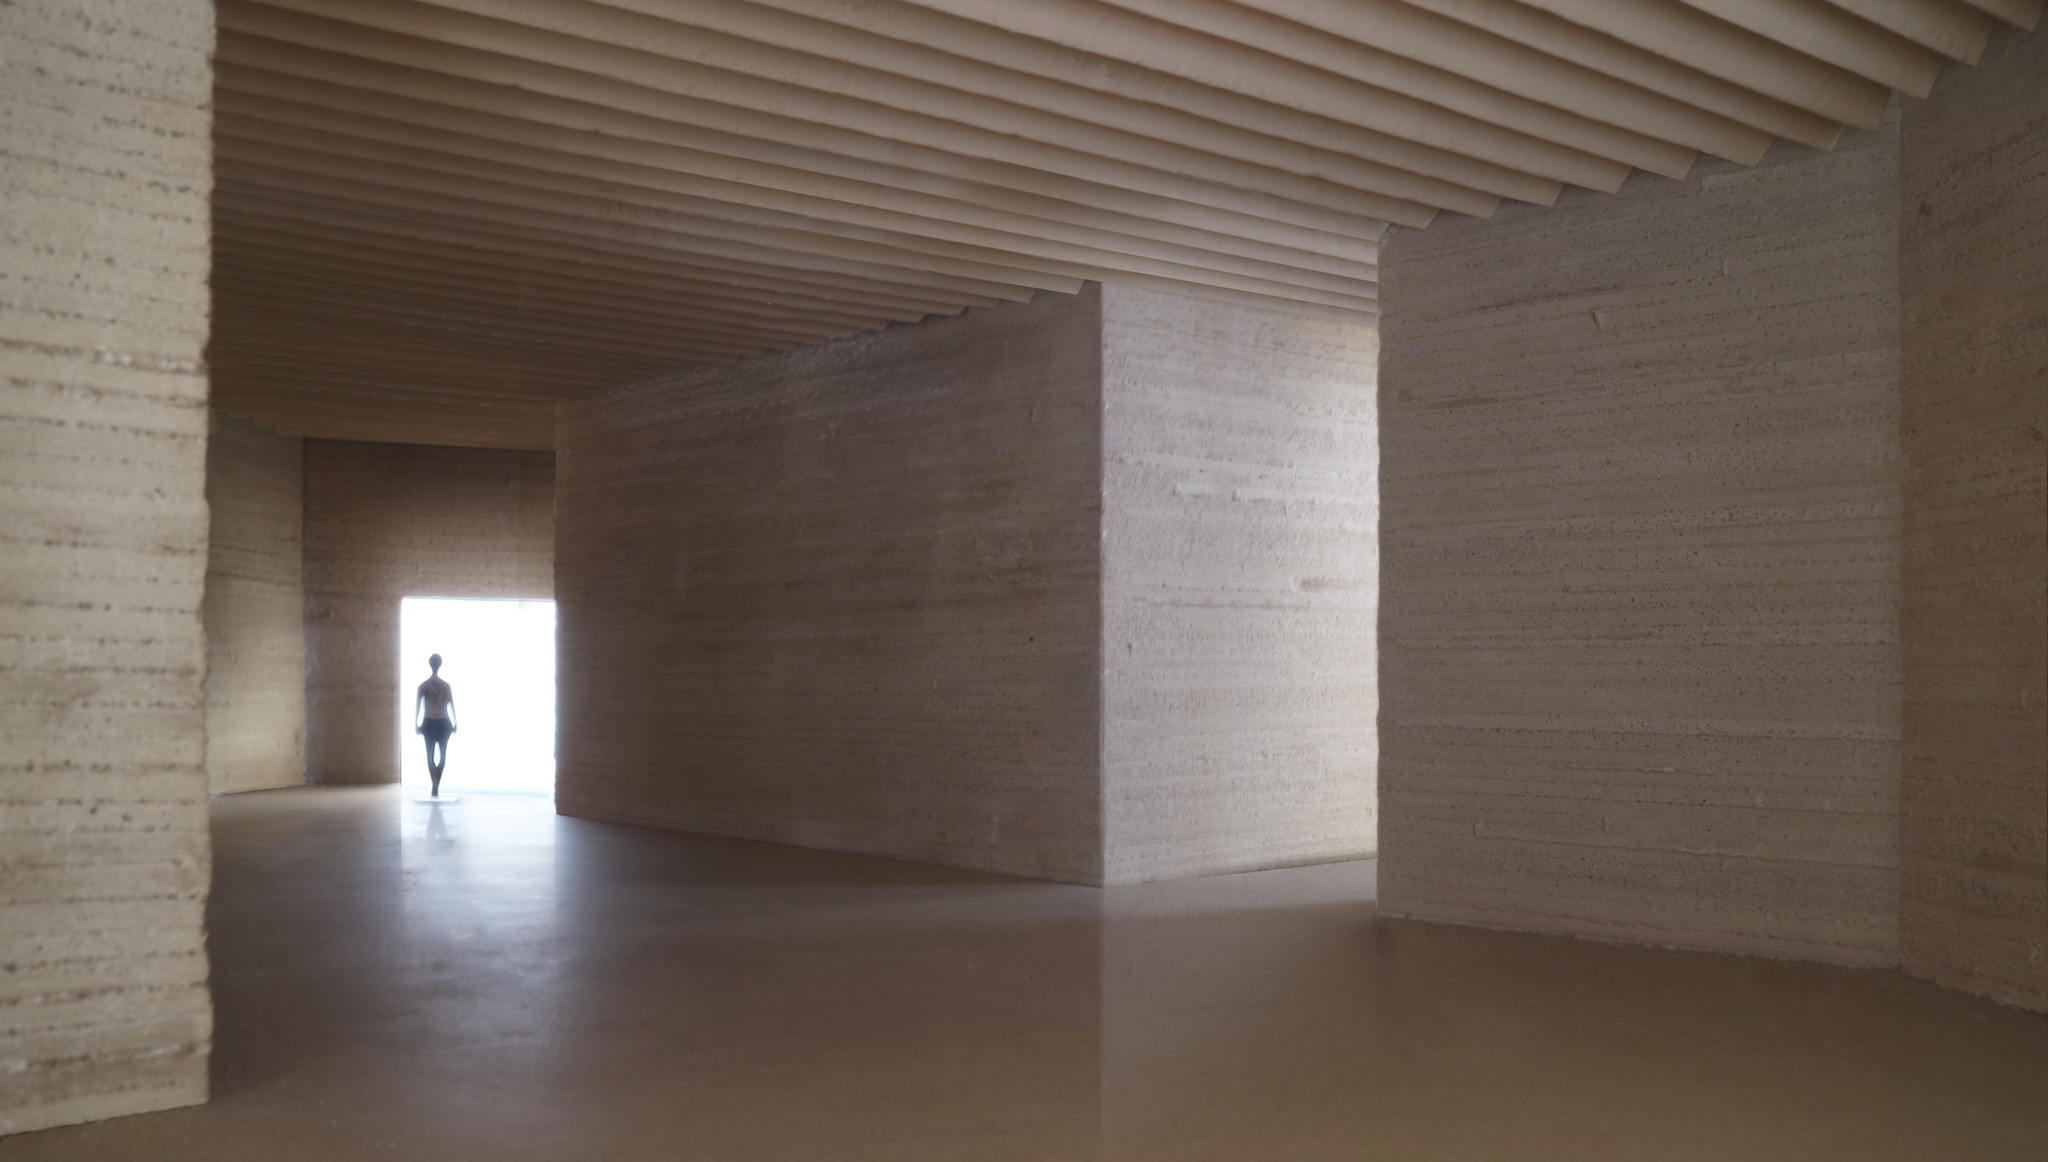 The inside of the museum would evoke an Incan temple.